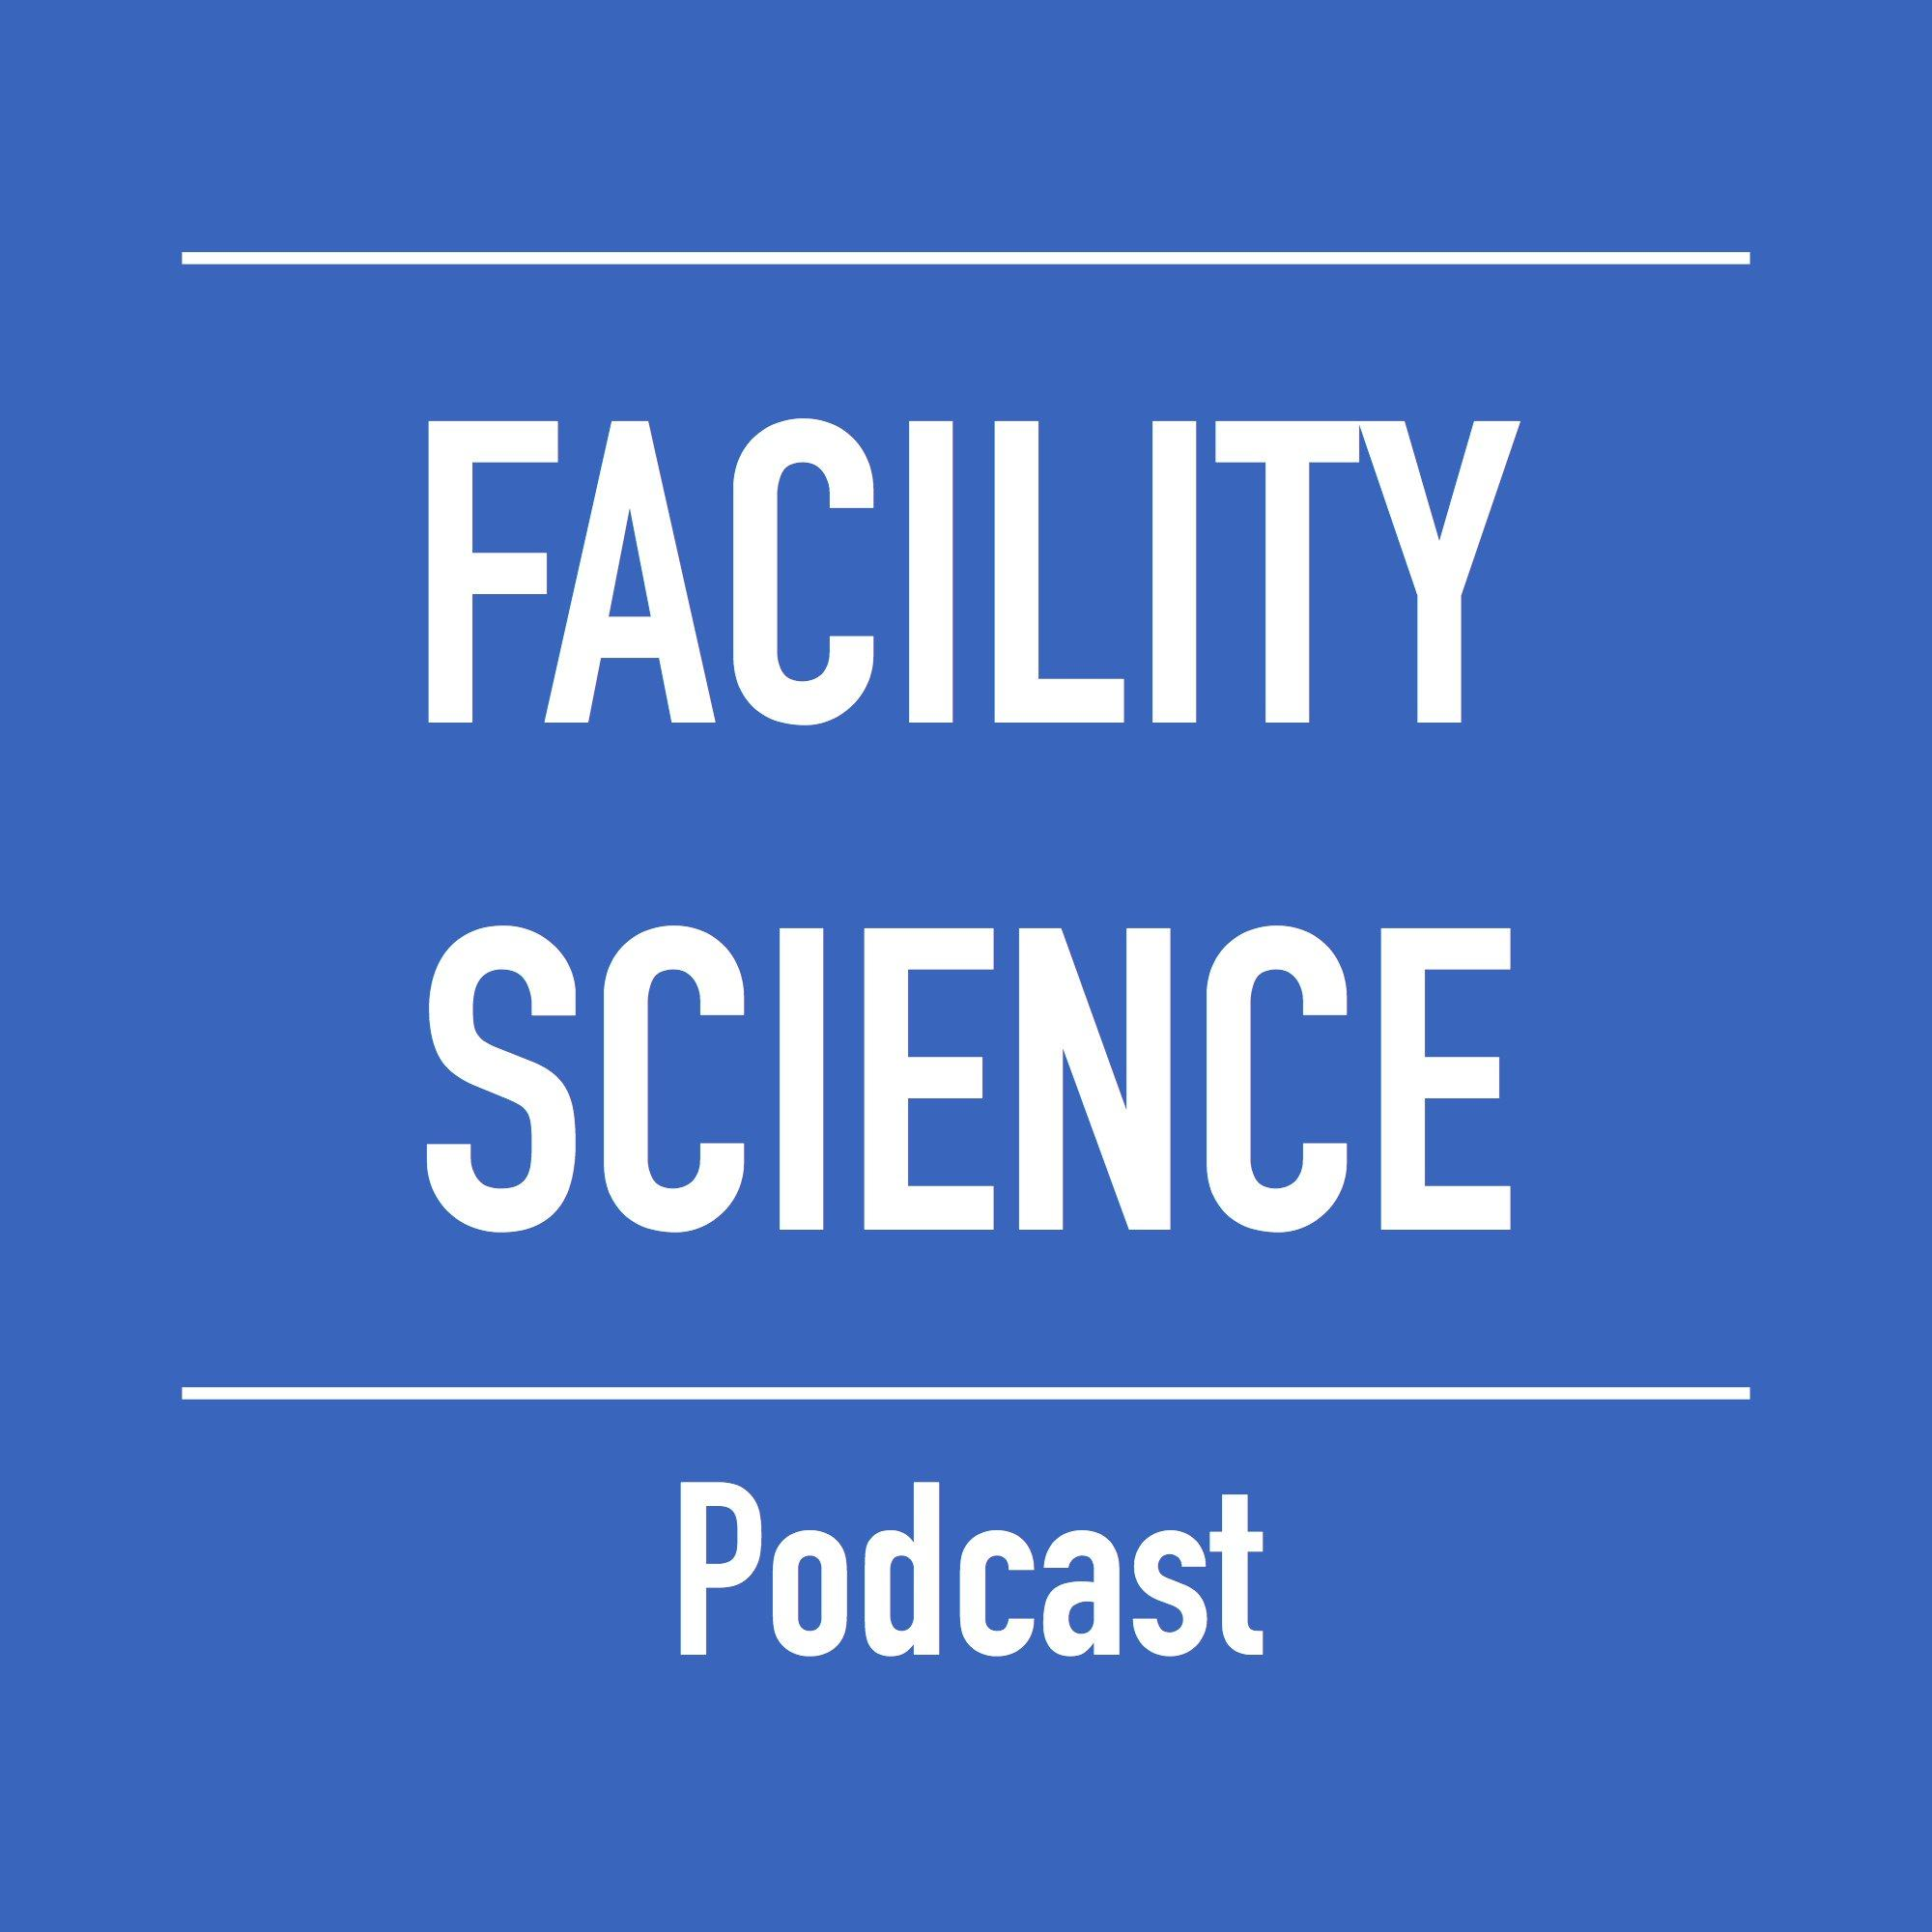 FSP0014 - Modbus - Facility Science Podcast #14 show art